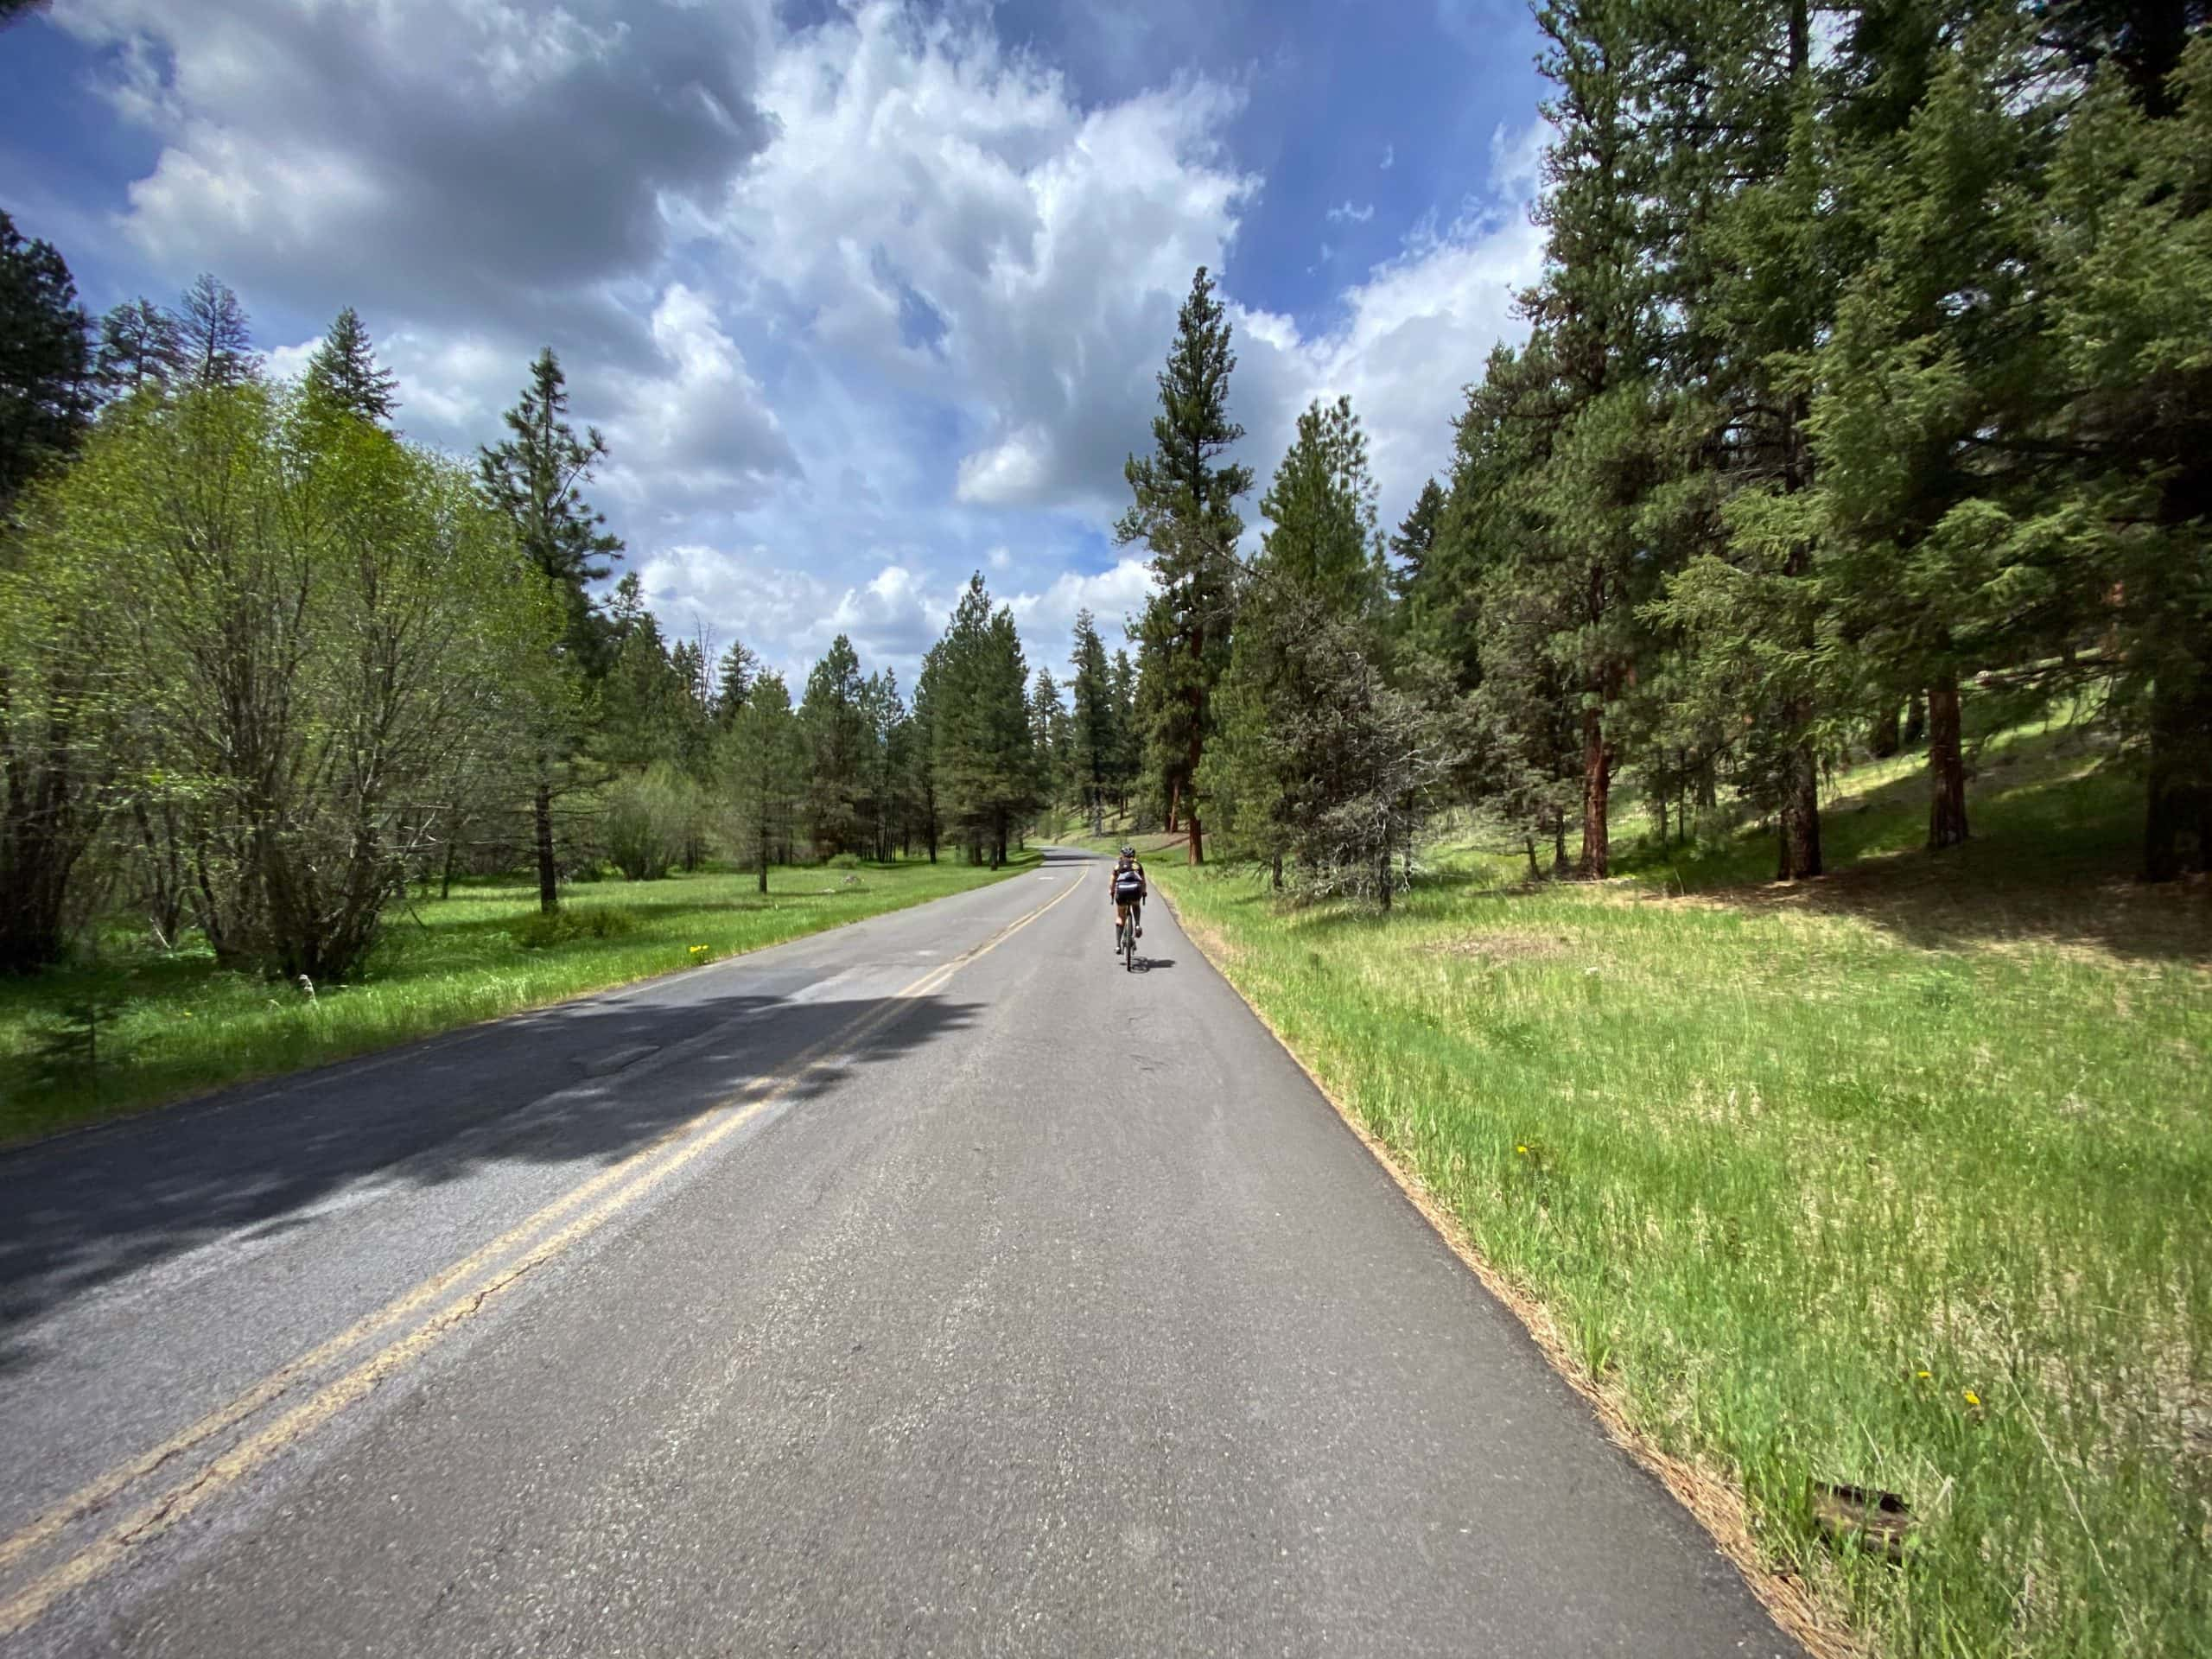 Cyclist on paved road with forest and mountain meadows in the Ochoco National forest.